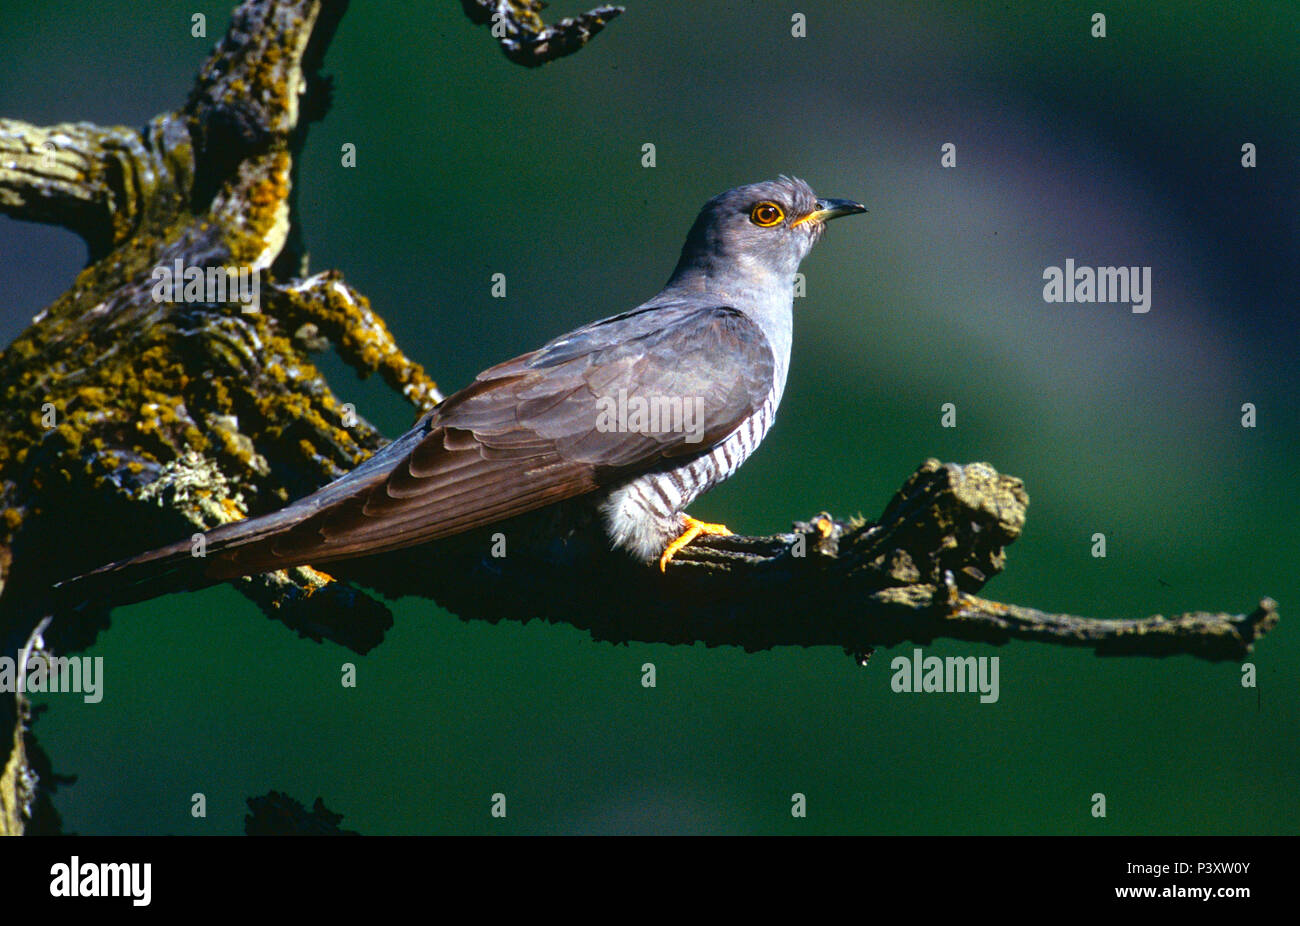 Common Cuckoo, Cuculus canorus, Cuculidae, bird, animal, Zervreila, Vals, Alps, Canton of Graubünden, Switzerland Stock Photo